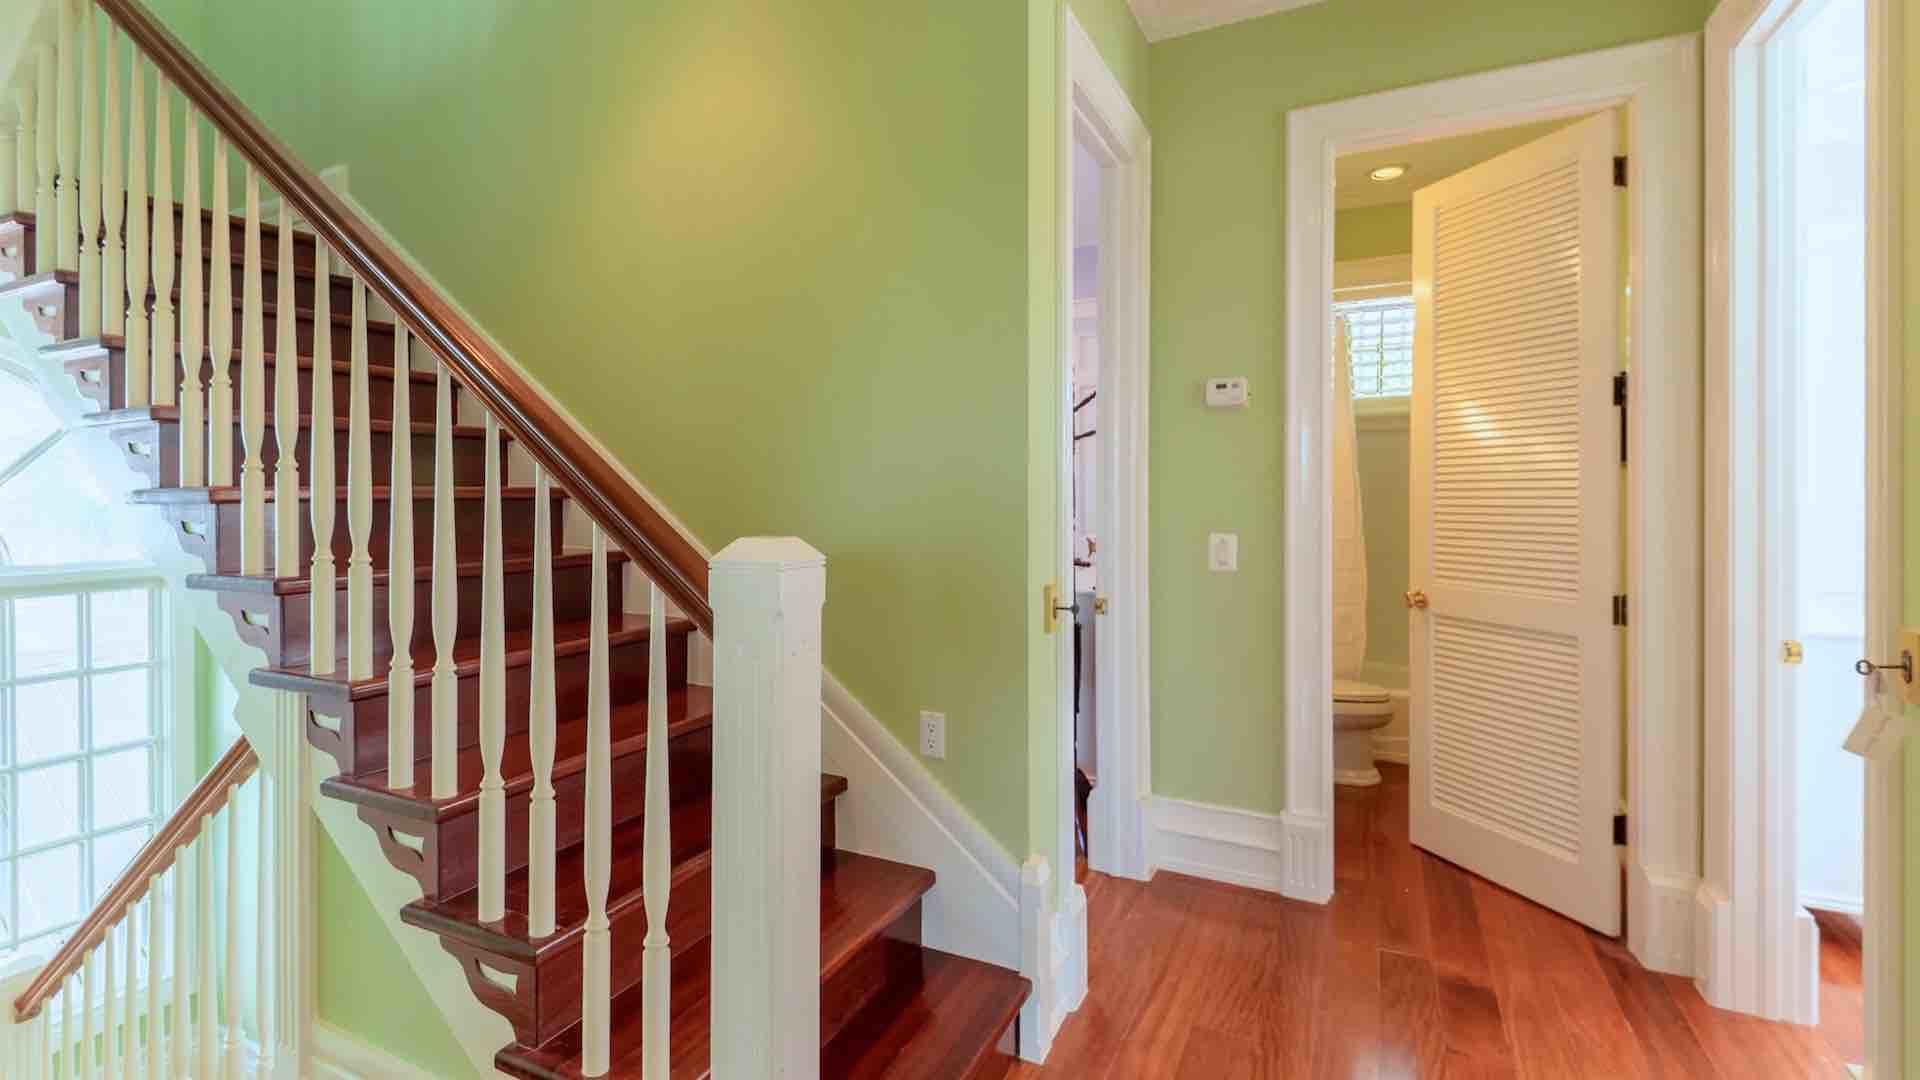 The elegant stairs lead you to the second and third floors of this grand home...